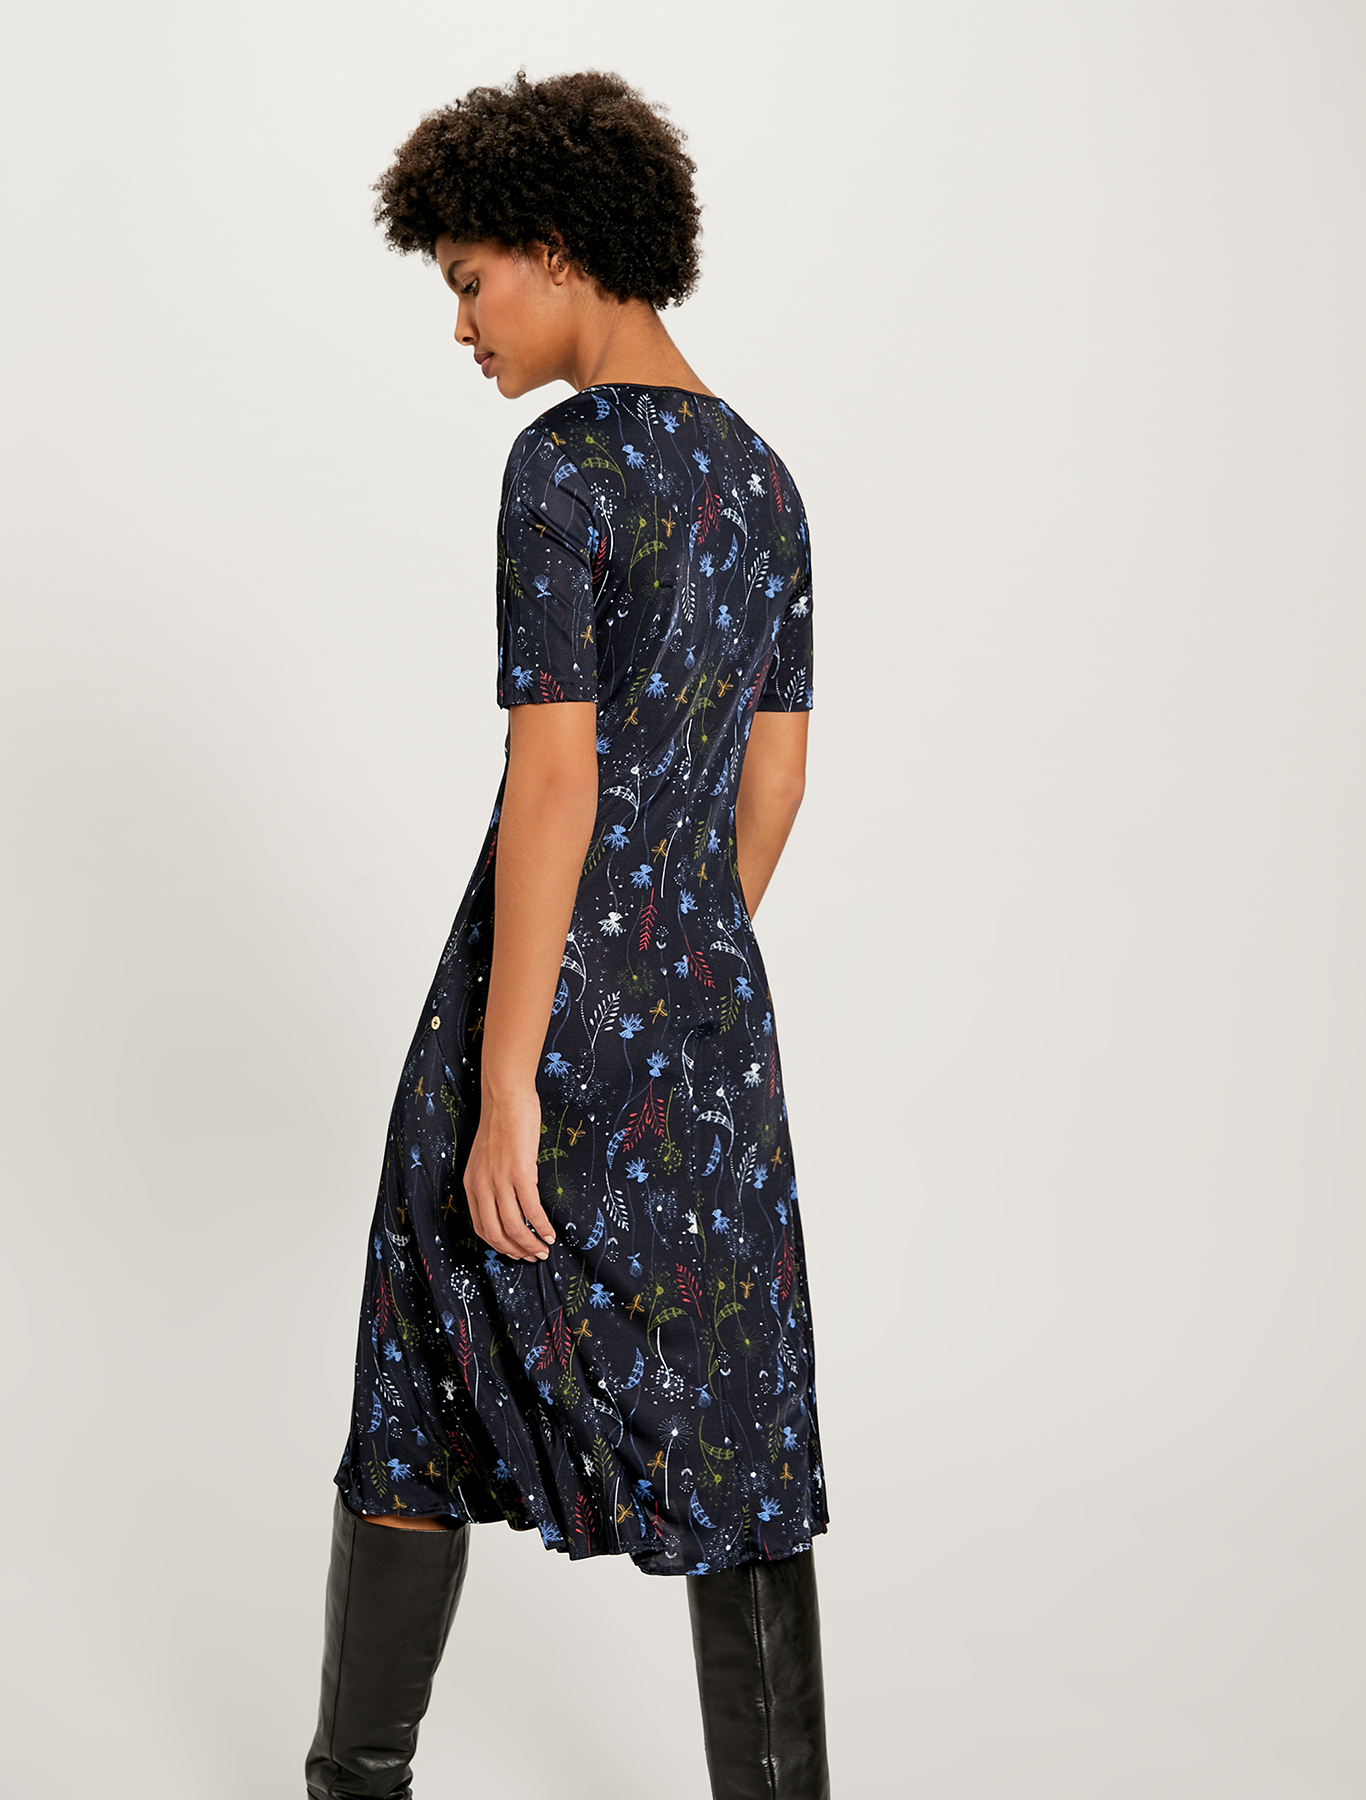 Jersey dress with plant print - navy blue pattern - pennyblack